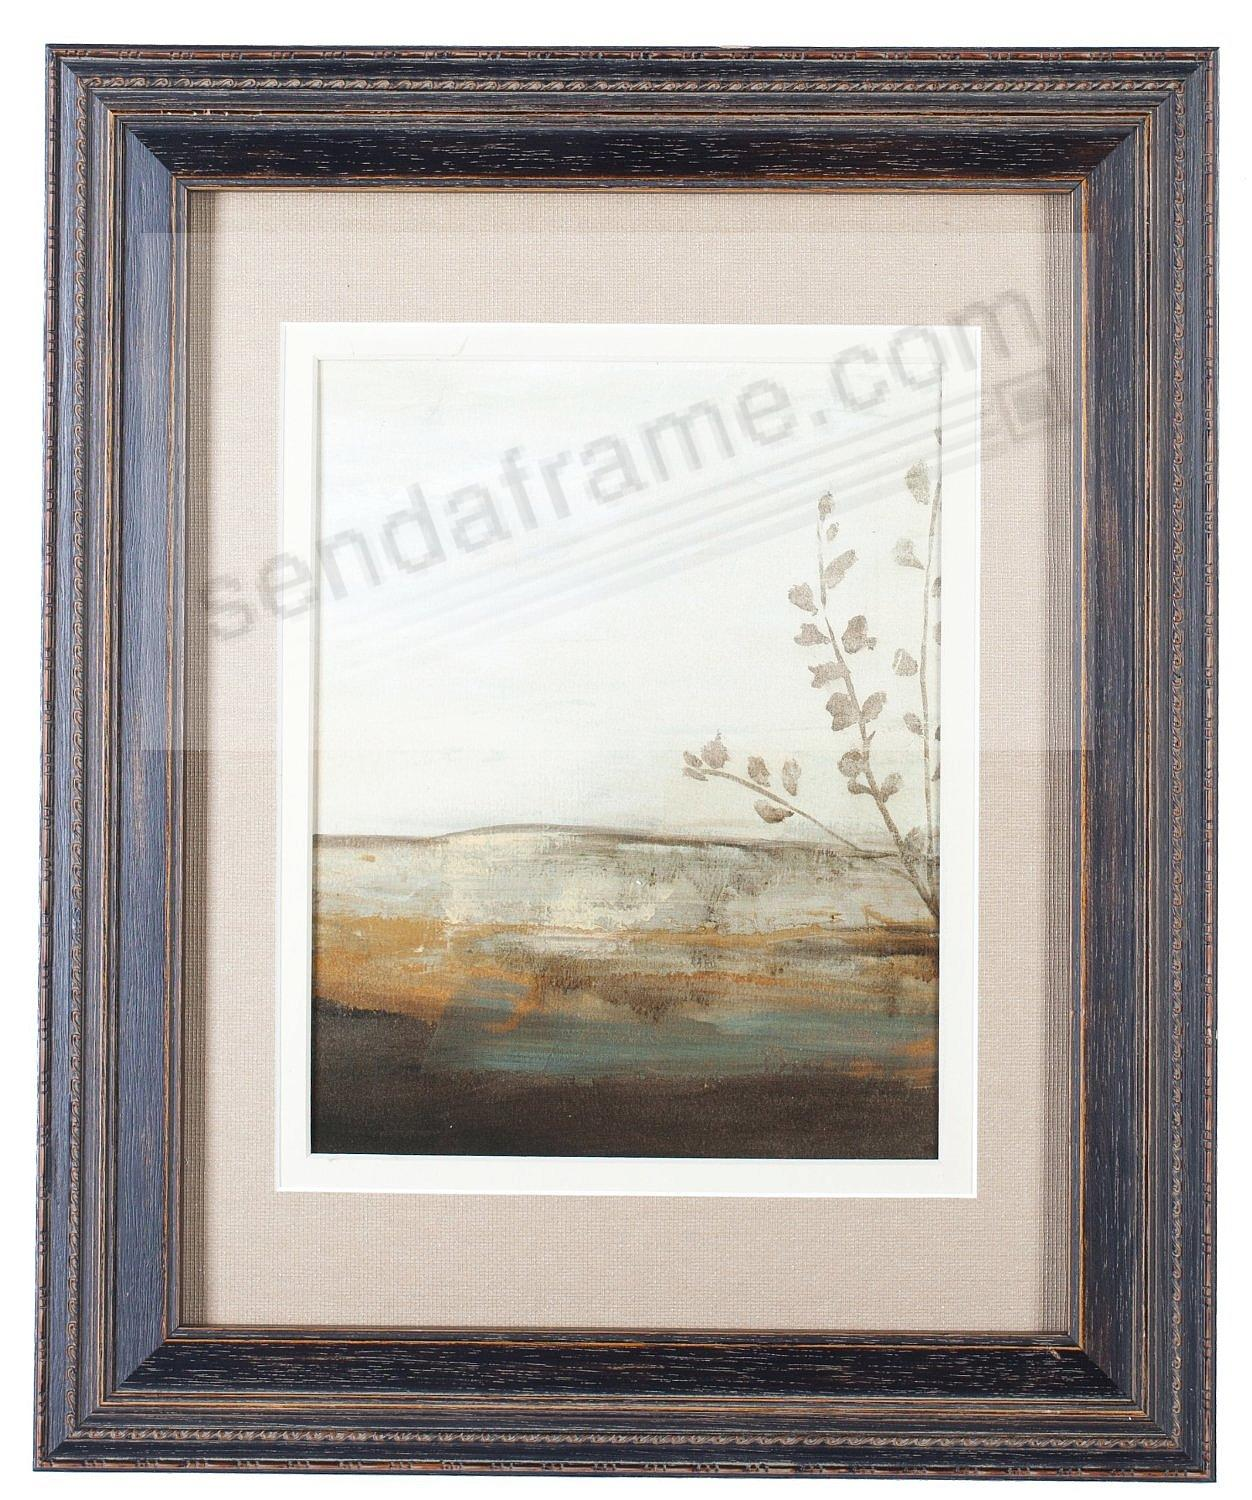 Distressed Brown Milan Matted Wood Frame 8x1011x14 From Artcare By